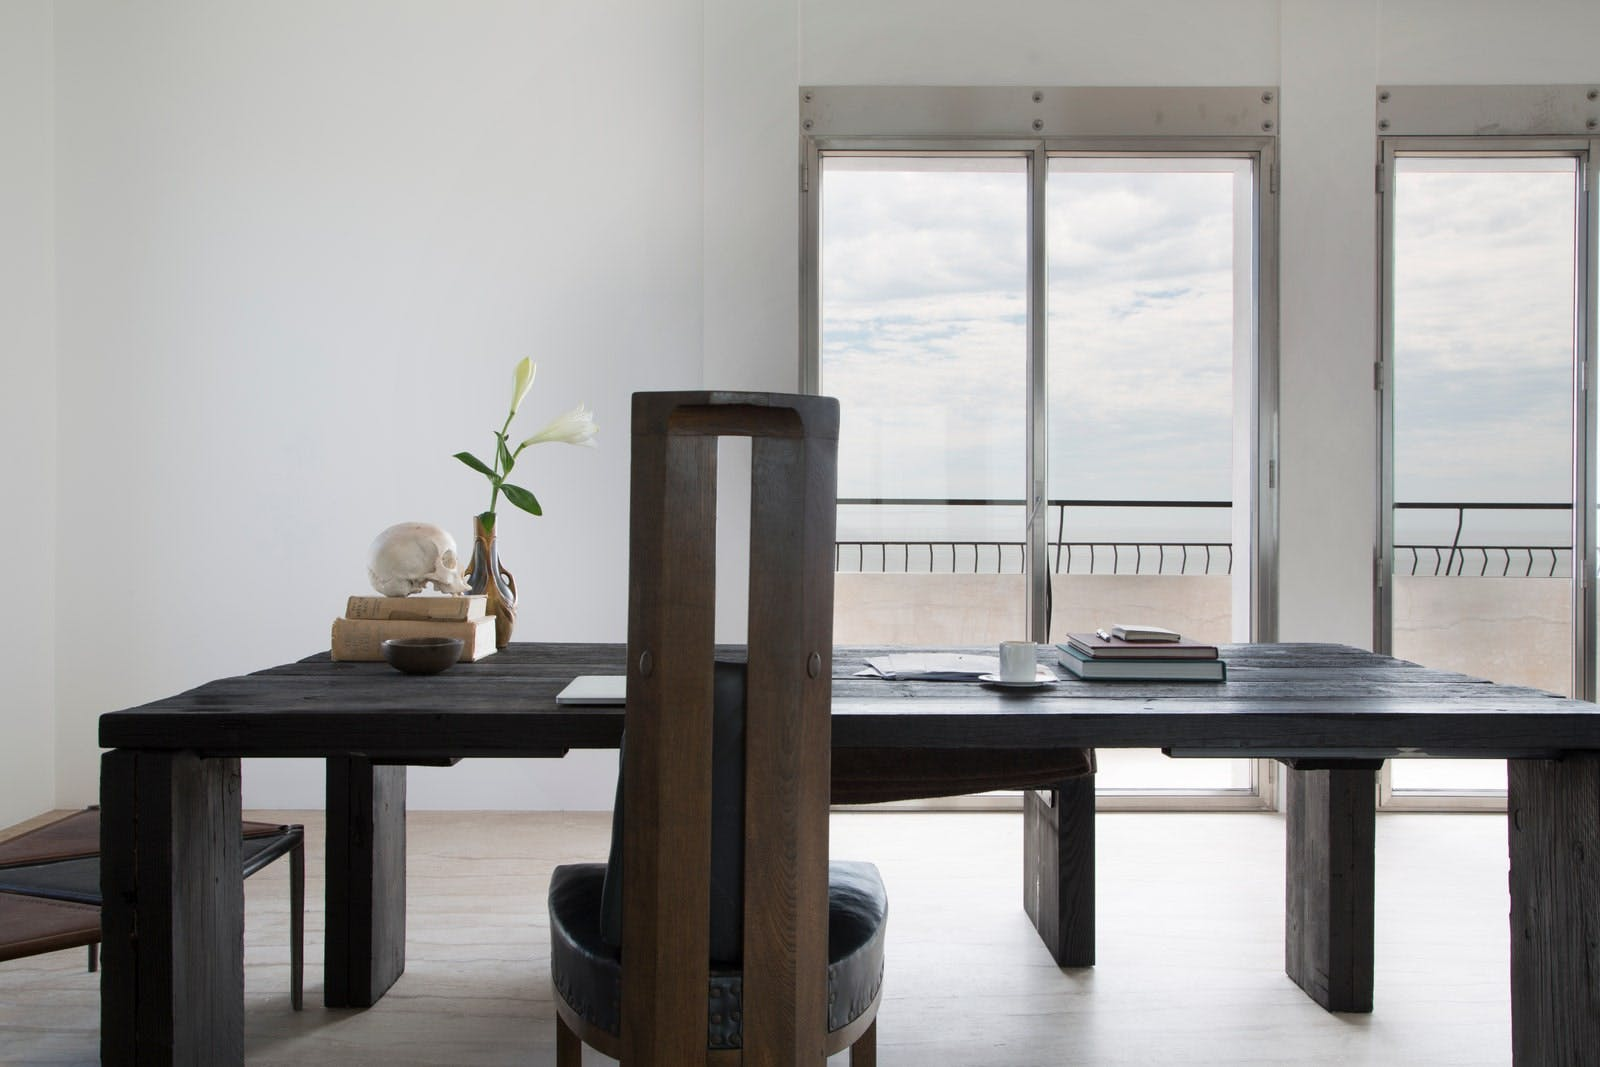 Rick Owens's minimalist house in Venice, Italy - Dining table.